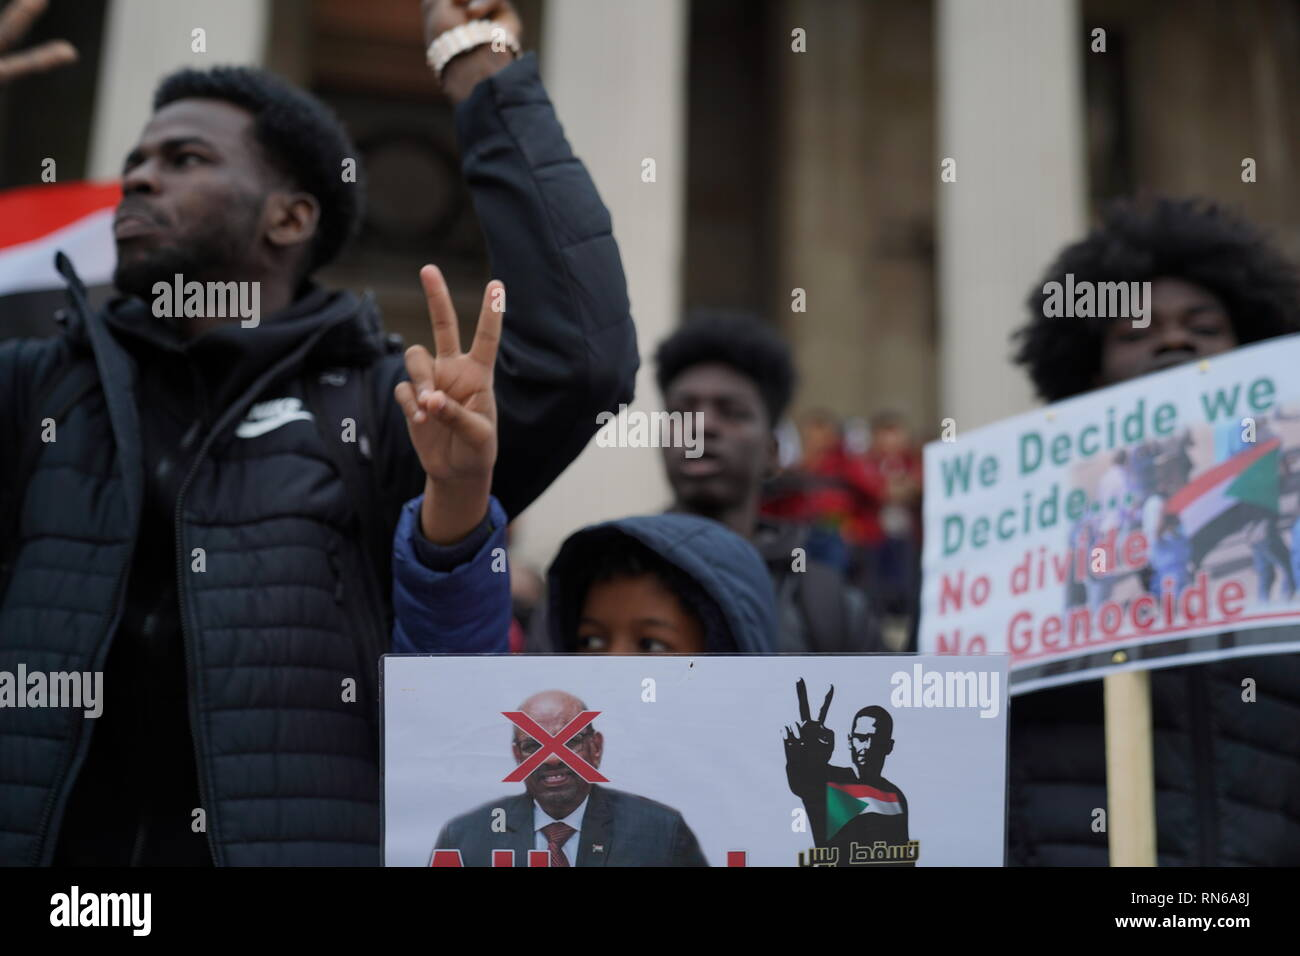 Trafalgar Square, London, UK. 16th Feb 2019. Photograph taken in central London during a protest organised by the Sudanese population in the UK in order to overthrow the Sudanese regime which has reigned for about 30 years causing civil upheaval and genocides mostly in the South Sudan which now holds its independence. The county overall has suffered from justice ranging from hyperinflation to unlawful imprisonment. Credit: Ioannis Toutoungi/Alamy Live News Stock Photo